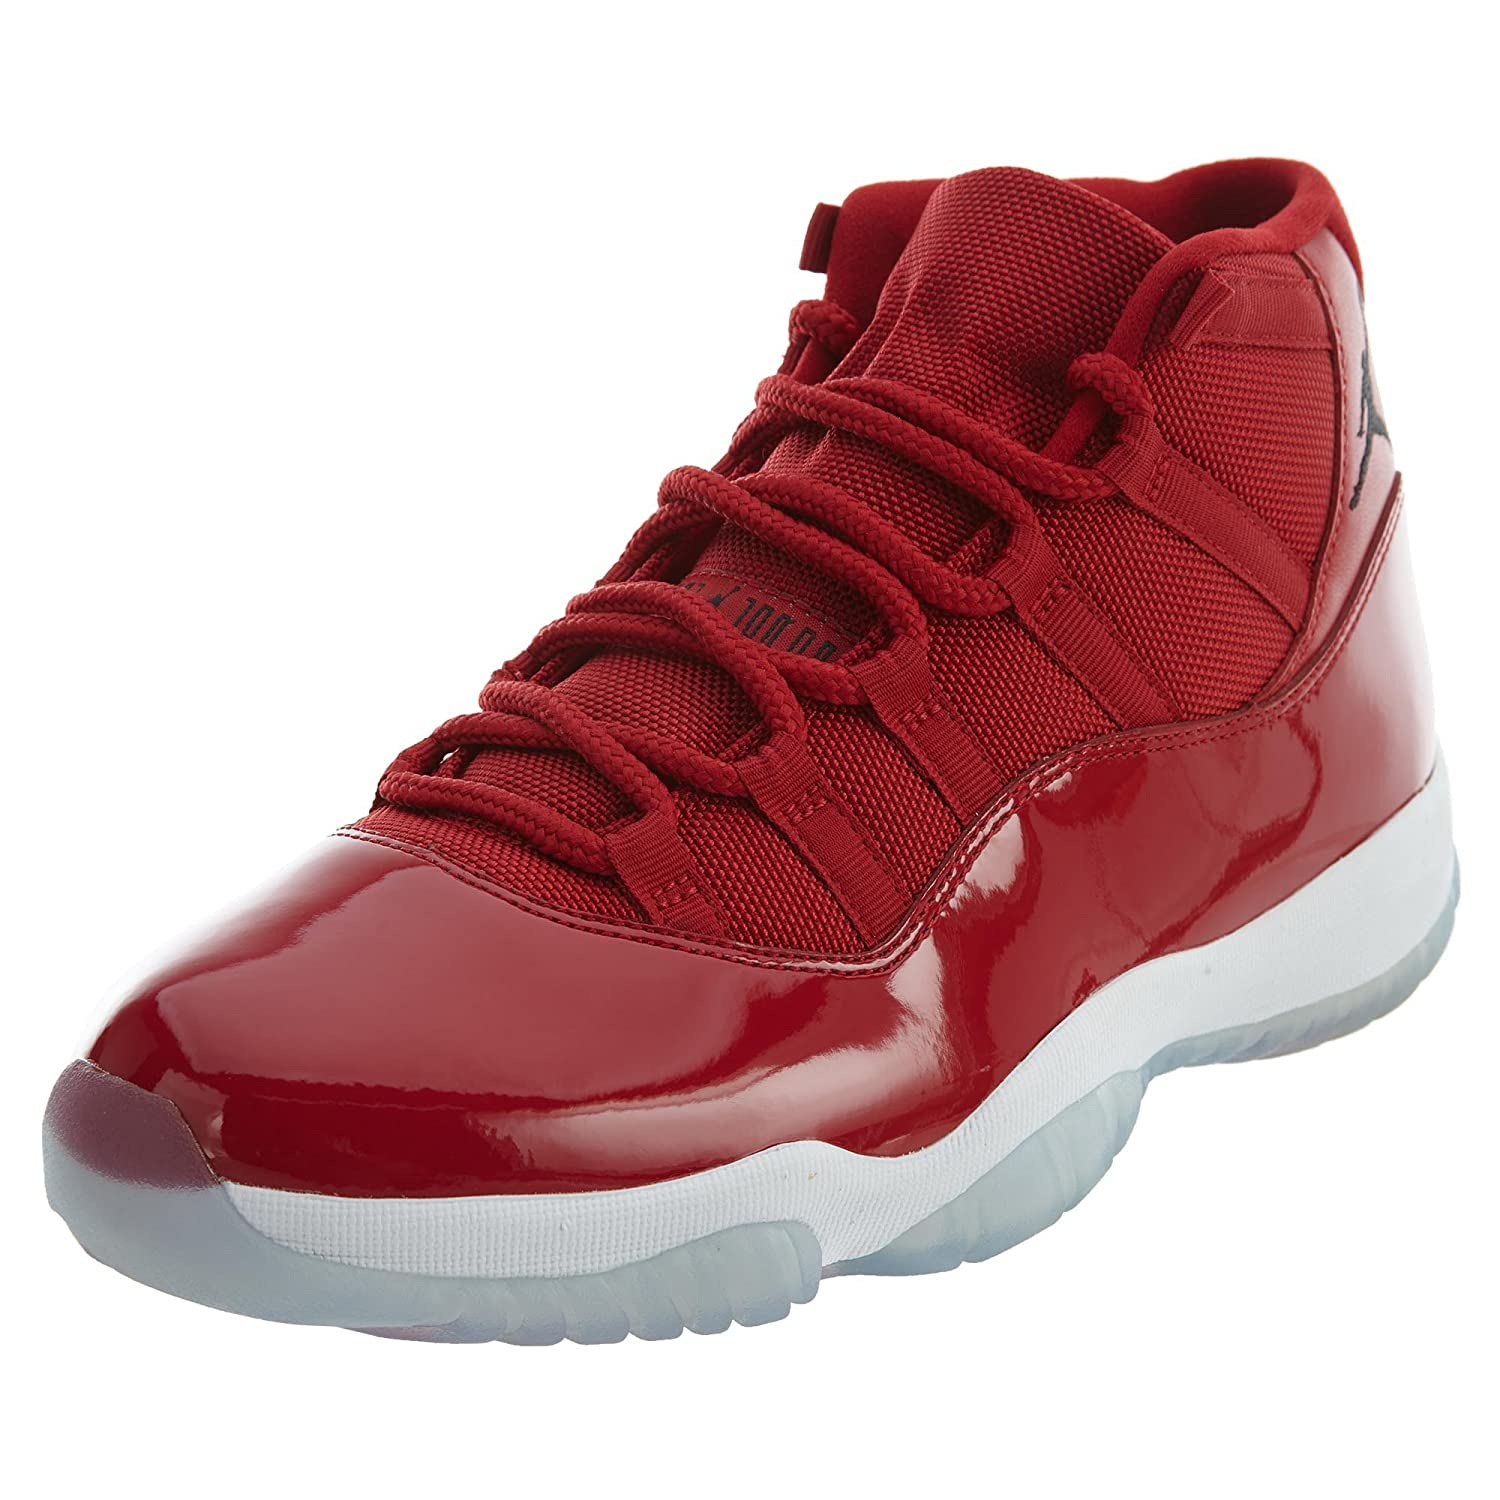 new concept 46207 6fb2d Amazon.com   Air Jordan 11 Retro